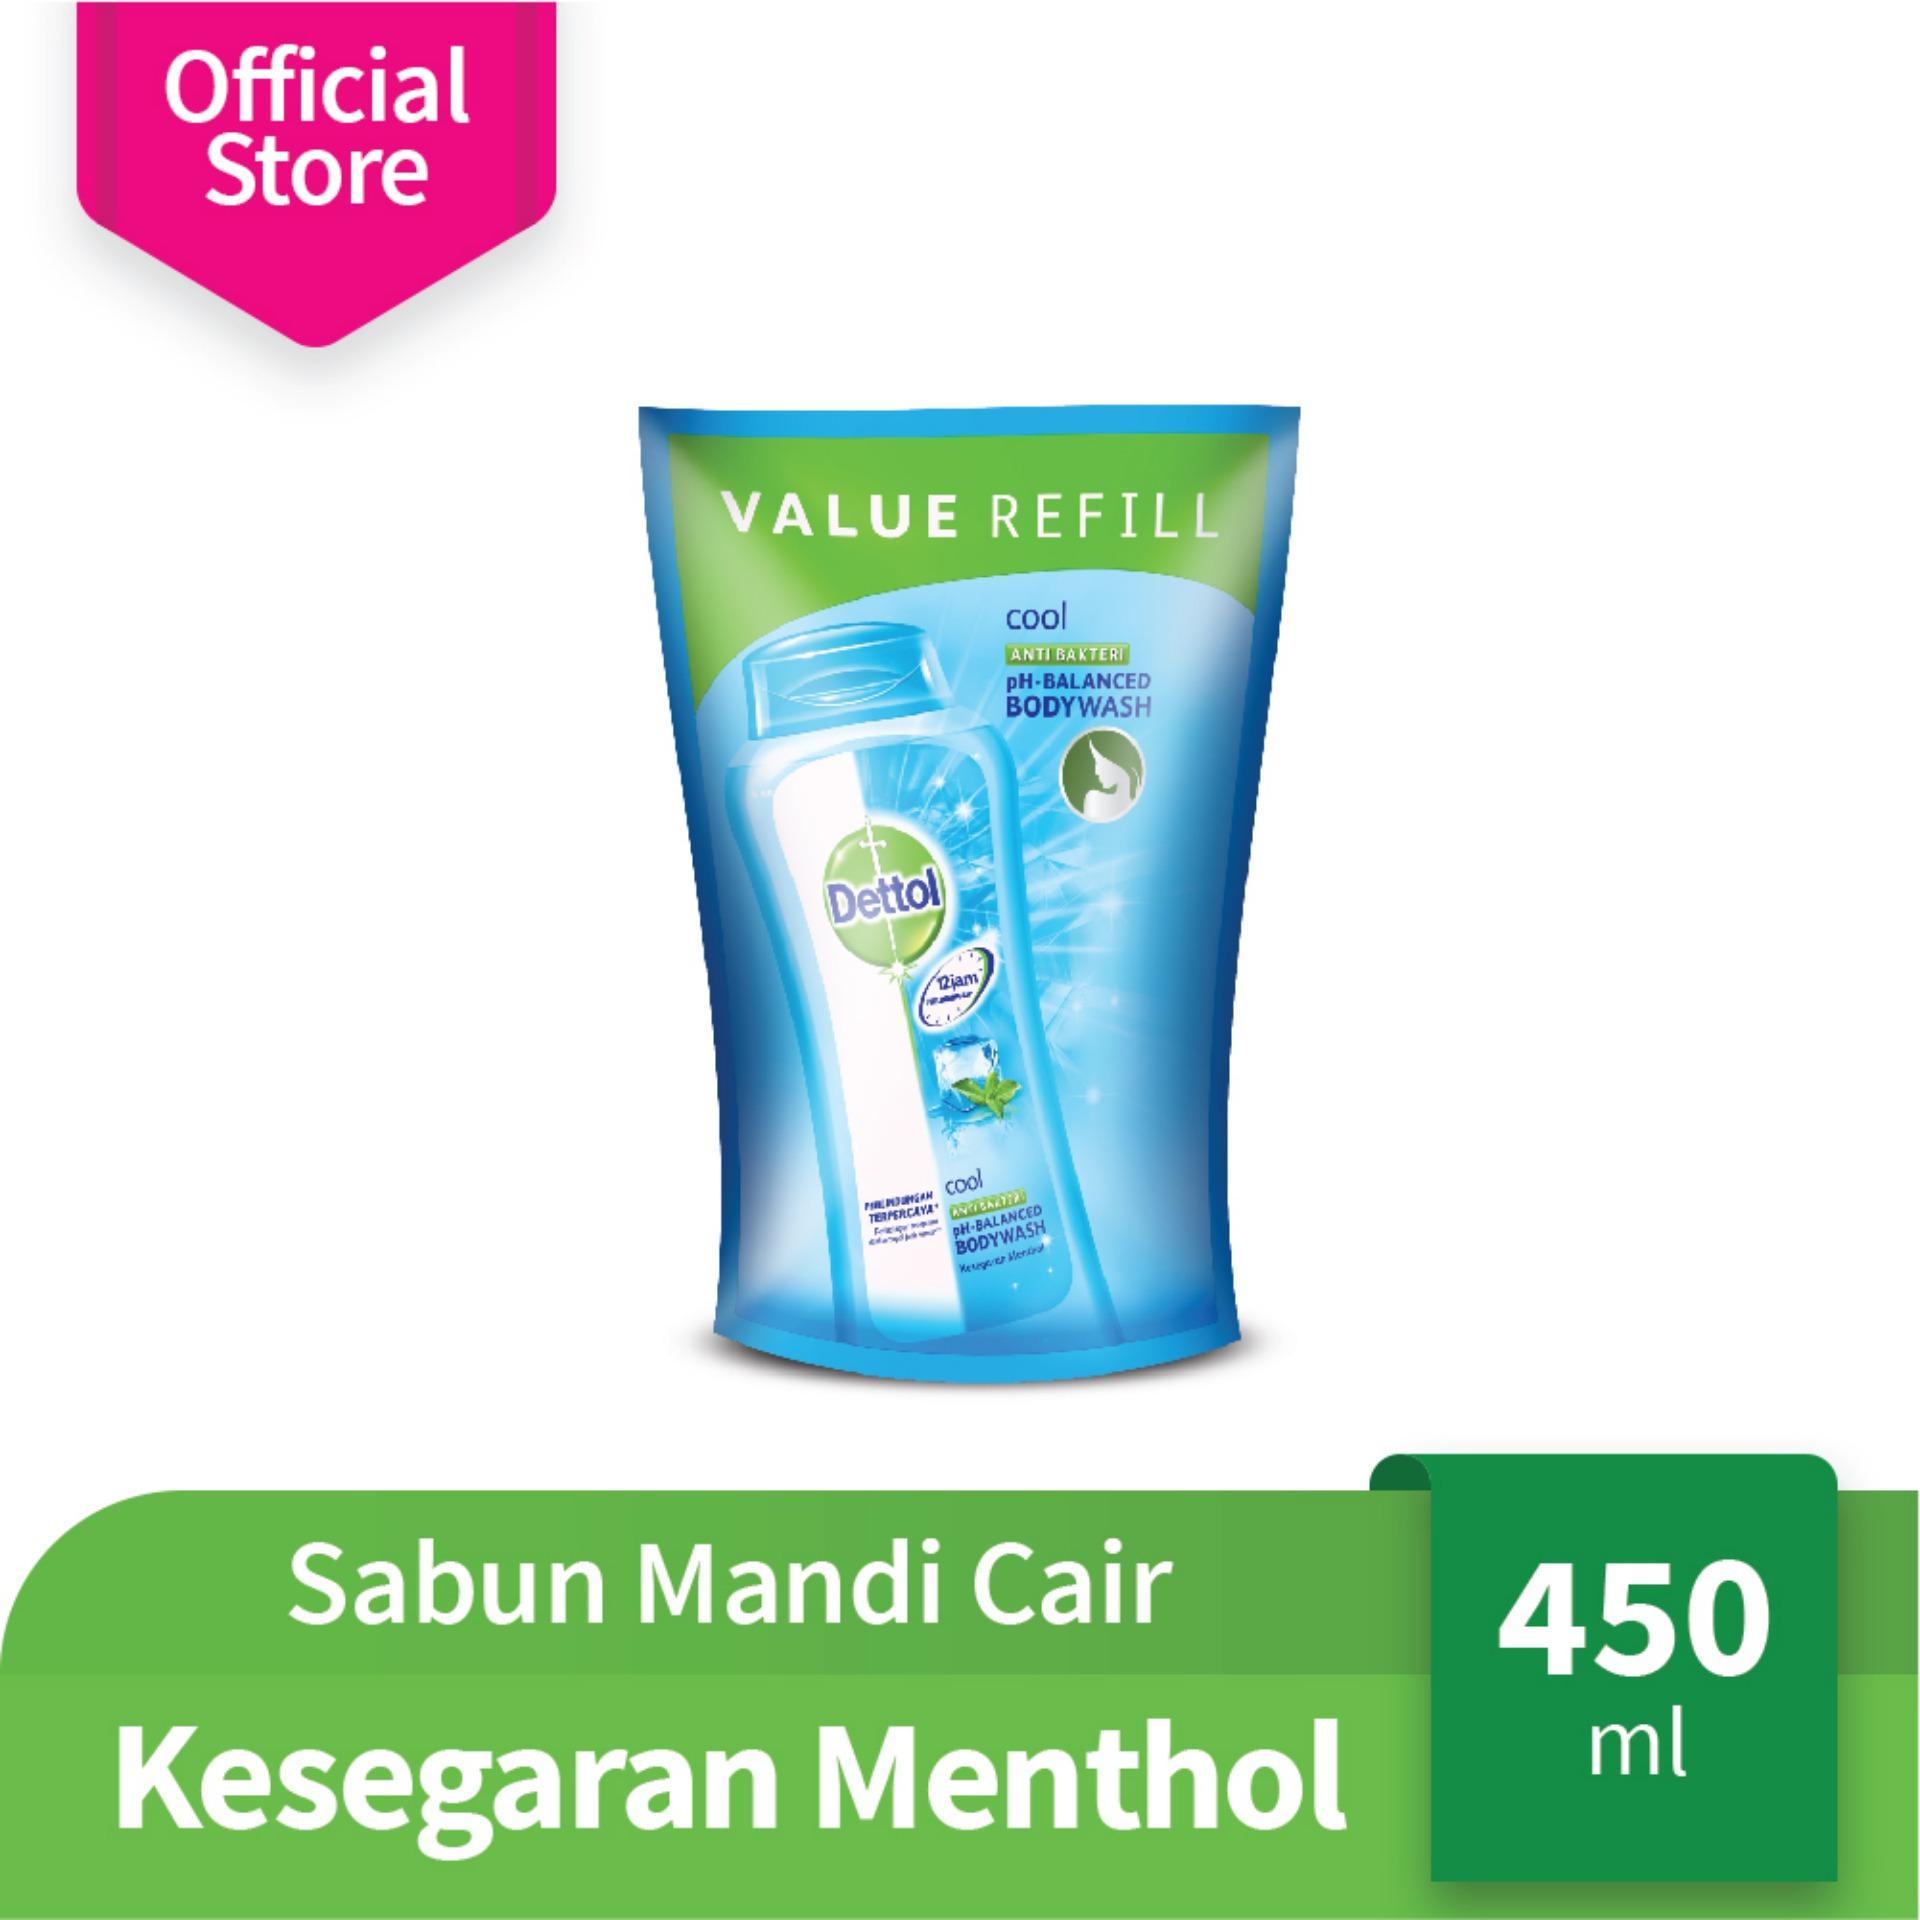 Spesifikasi Dettol Body Wash Cool Refill 450 Ml 3 Pcs Baru